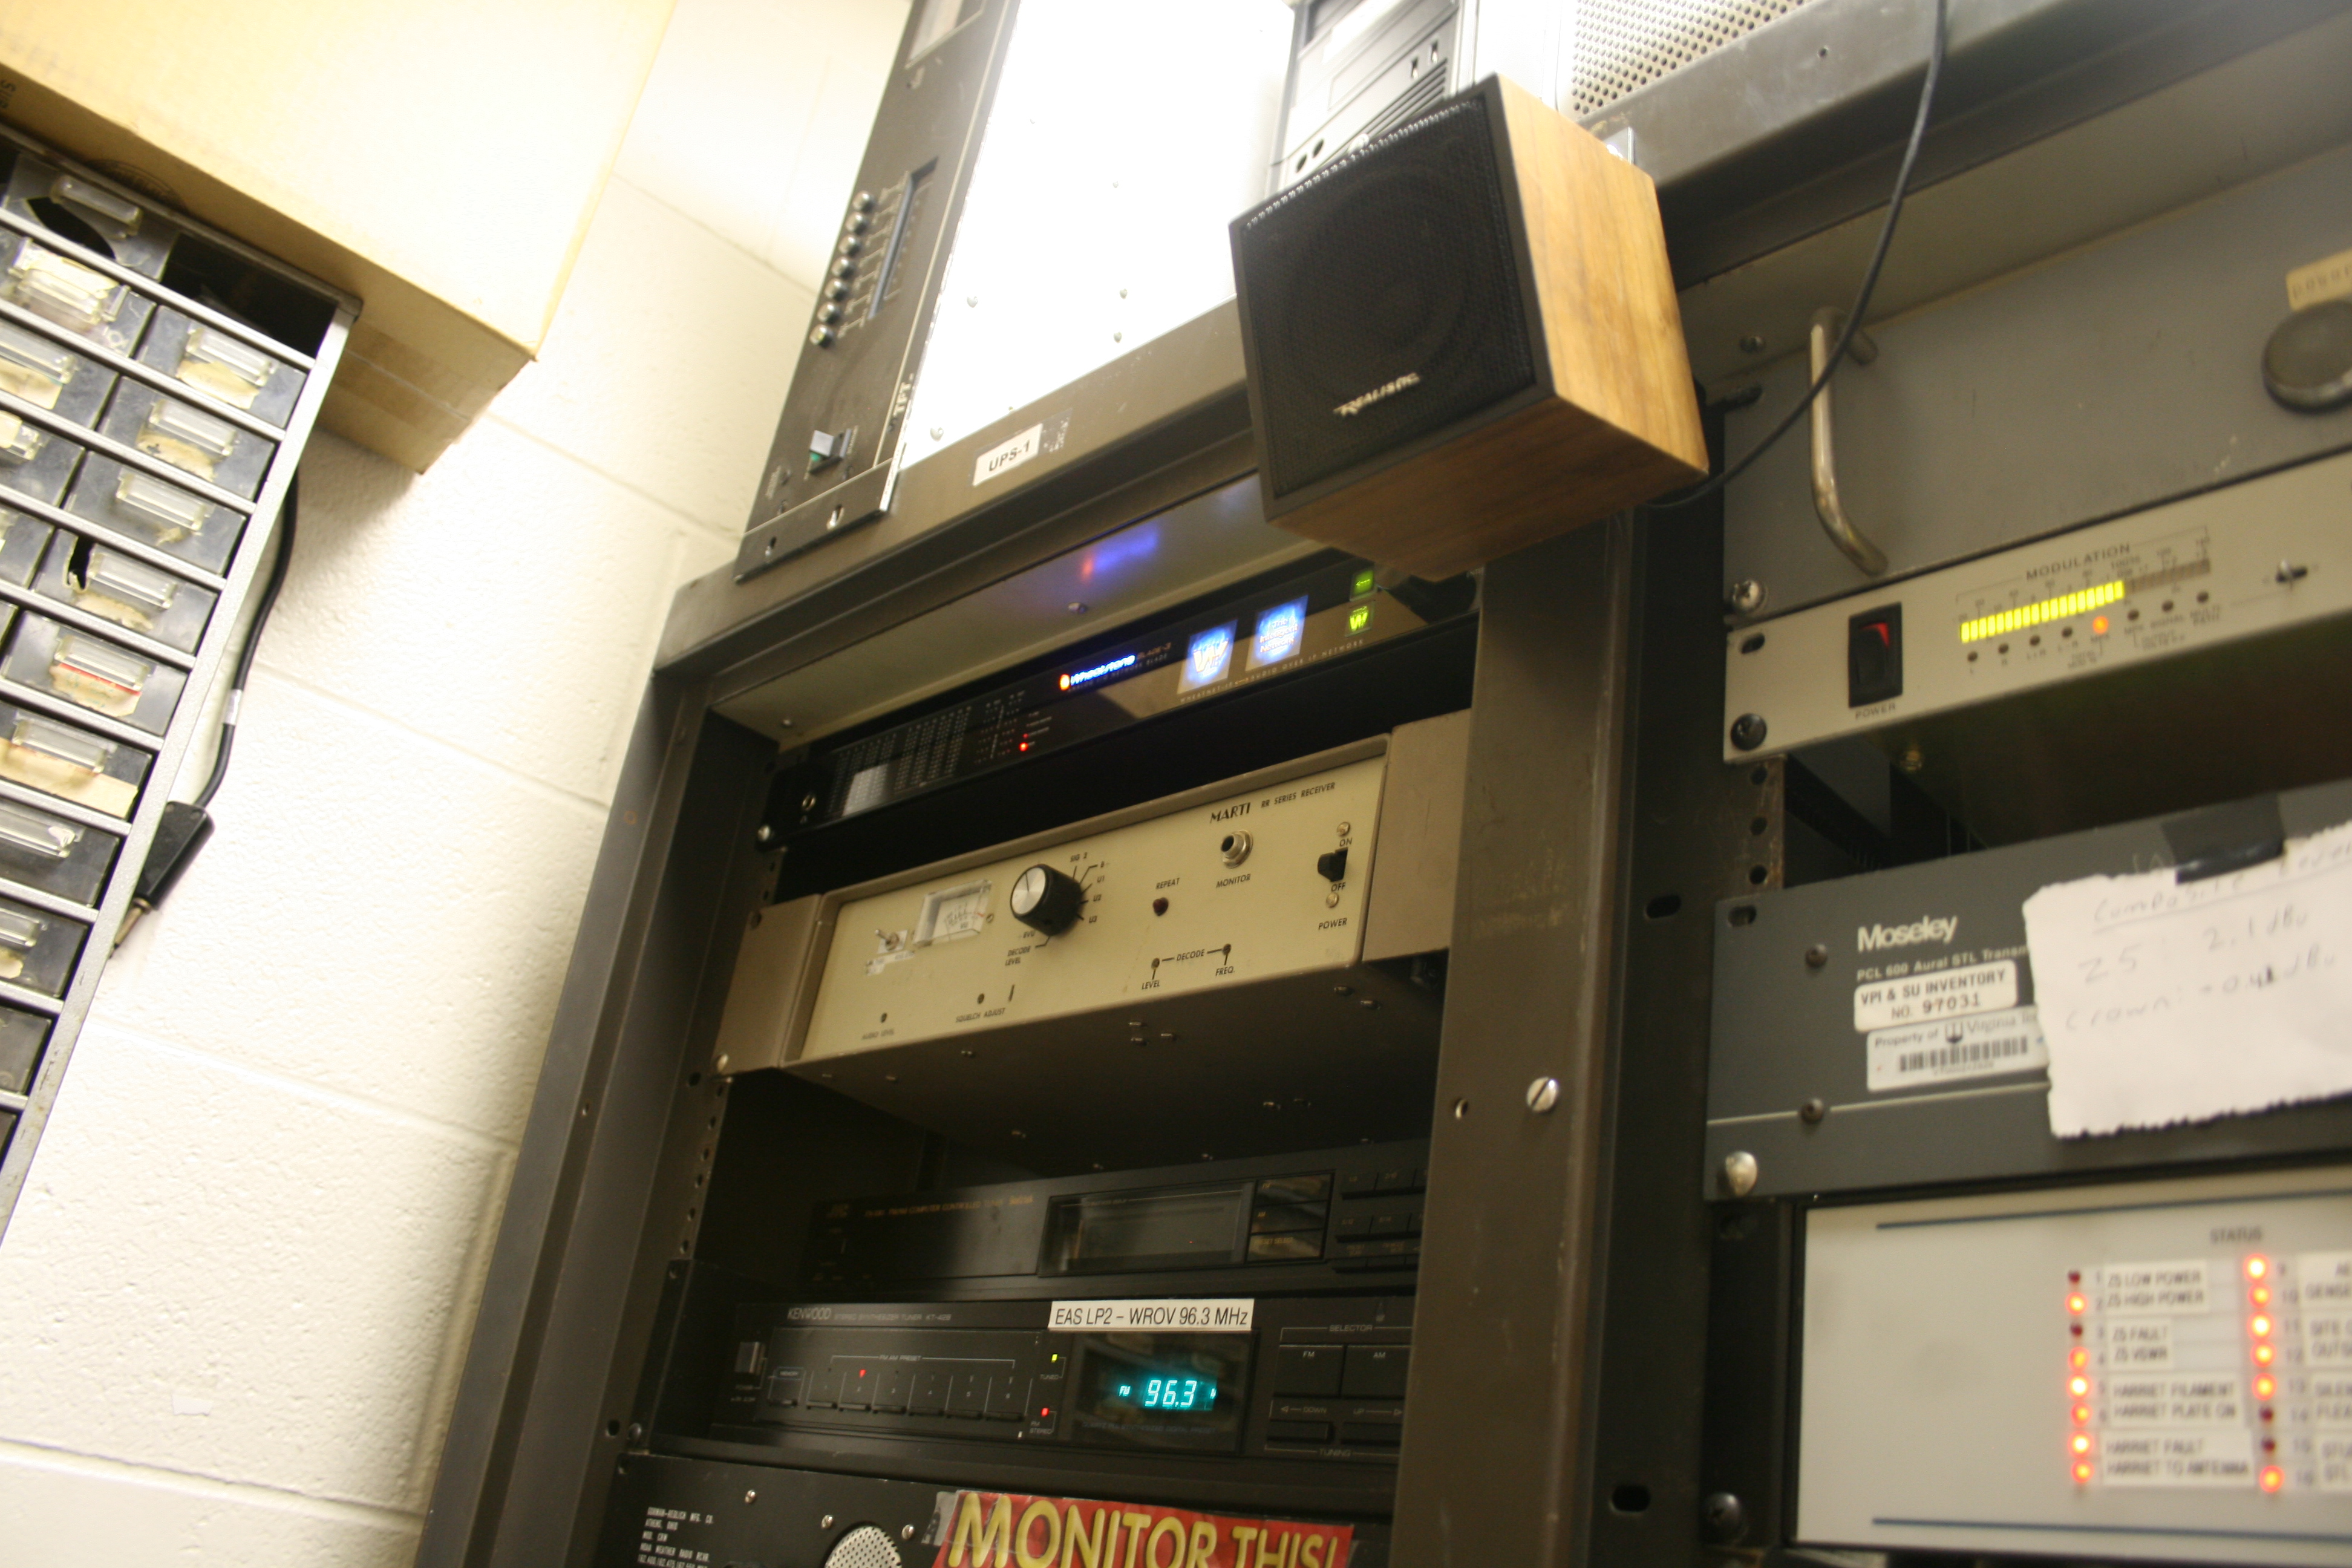 a photo of the engineering rack with one of the IP blades installed